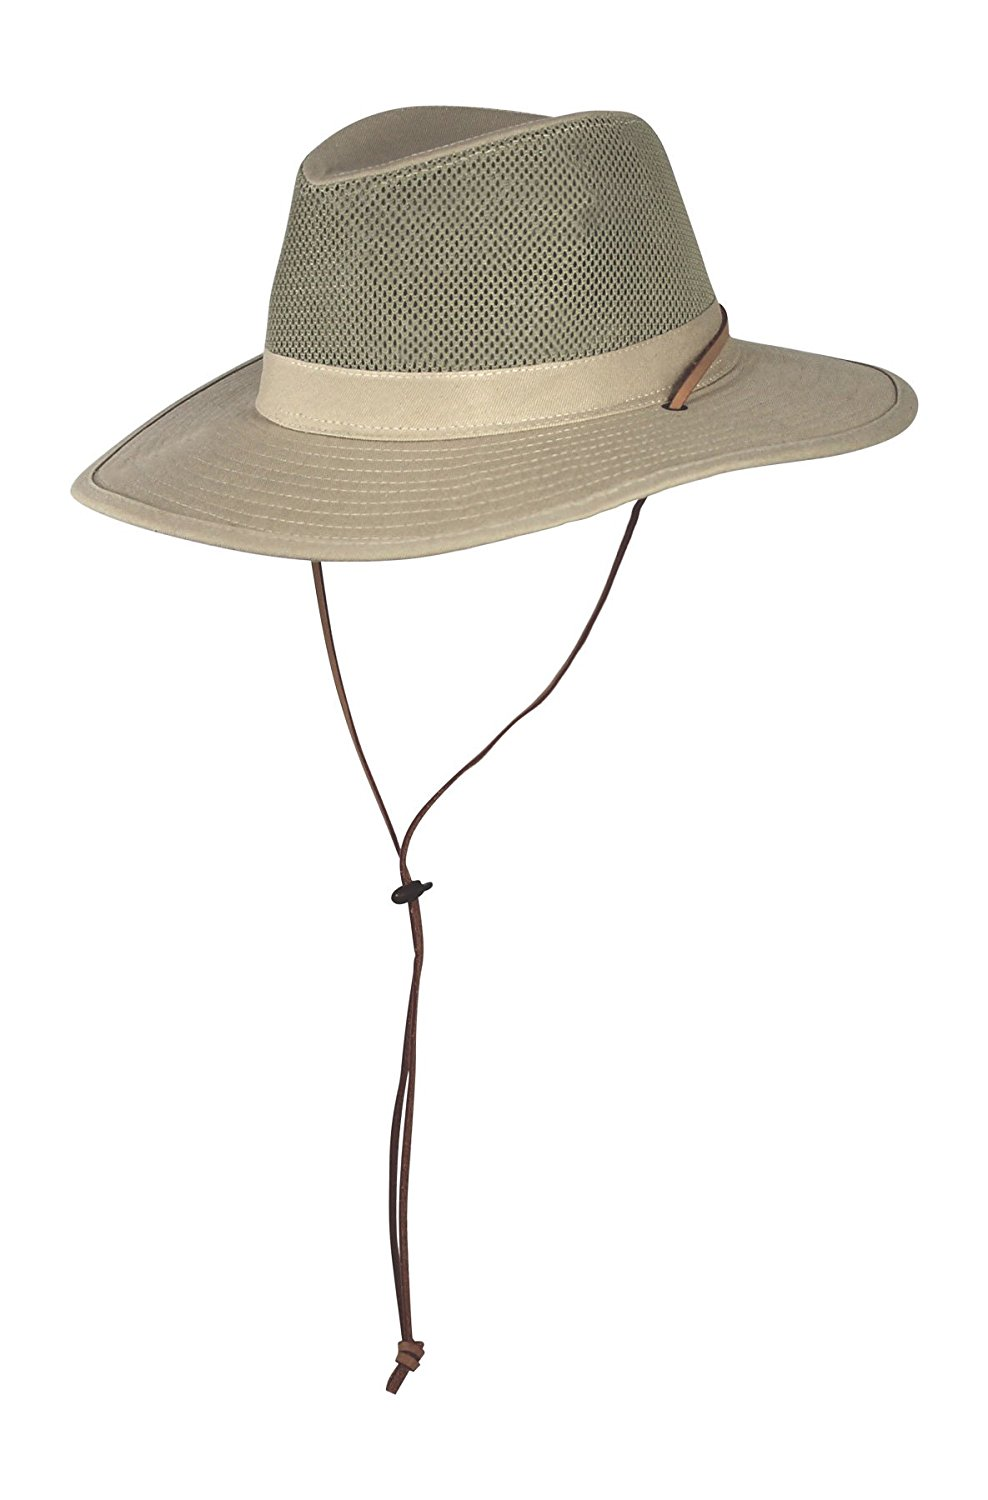 1c8a568f Get Quotations · SPF 50+ Vented Outback Safari Sun Hat w/Chin Strap, Mesh  Crown Breezer